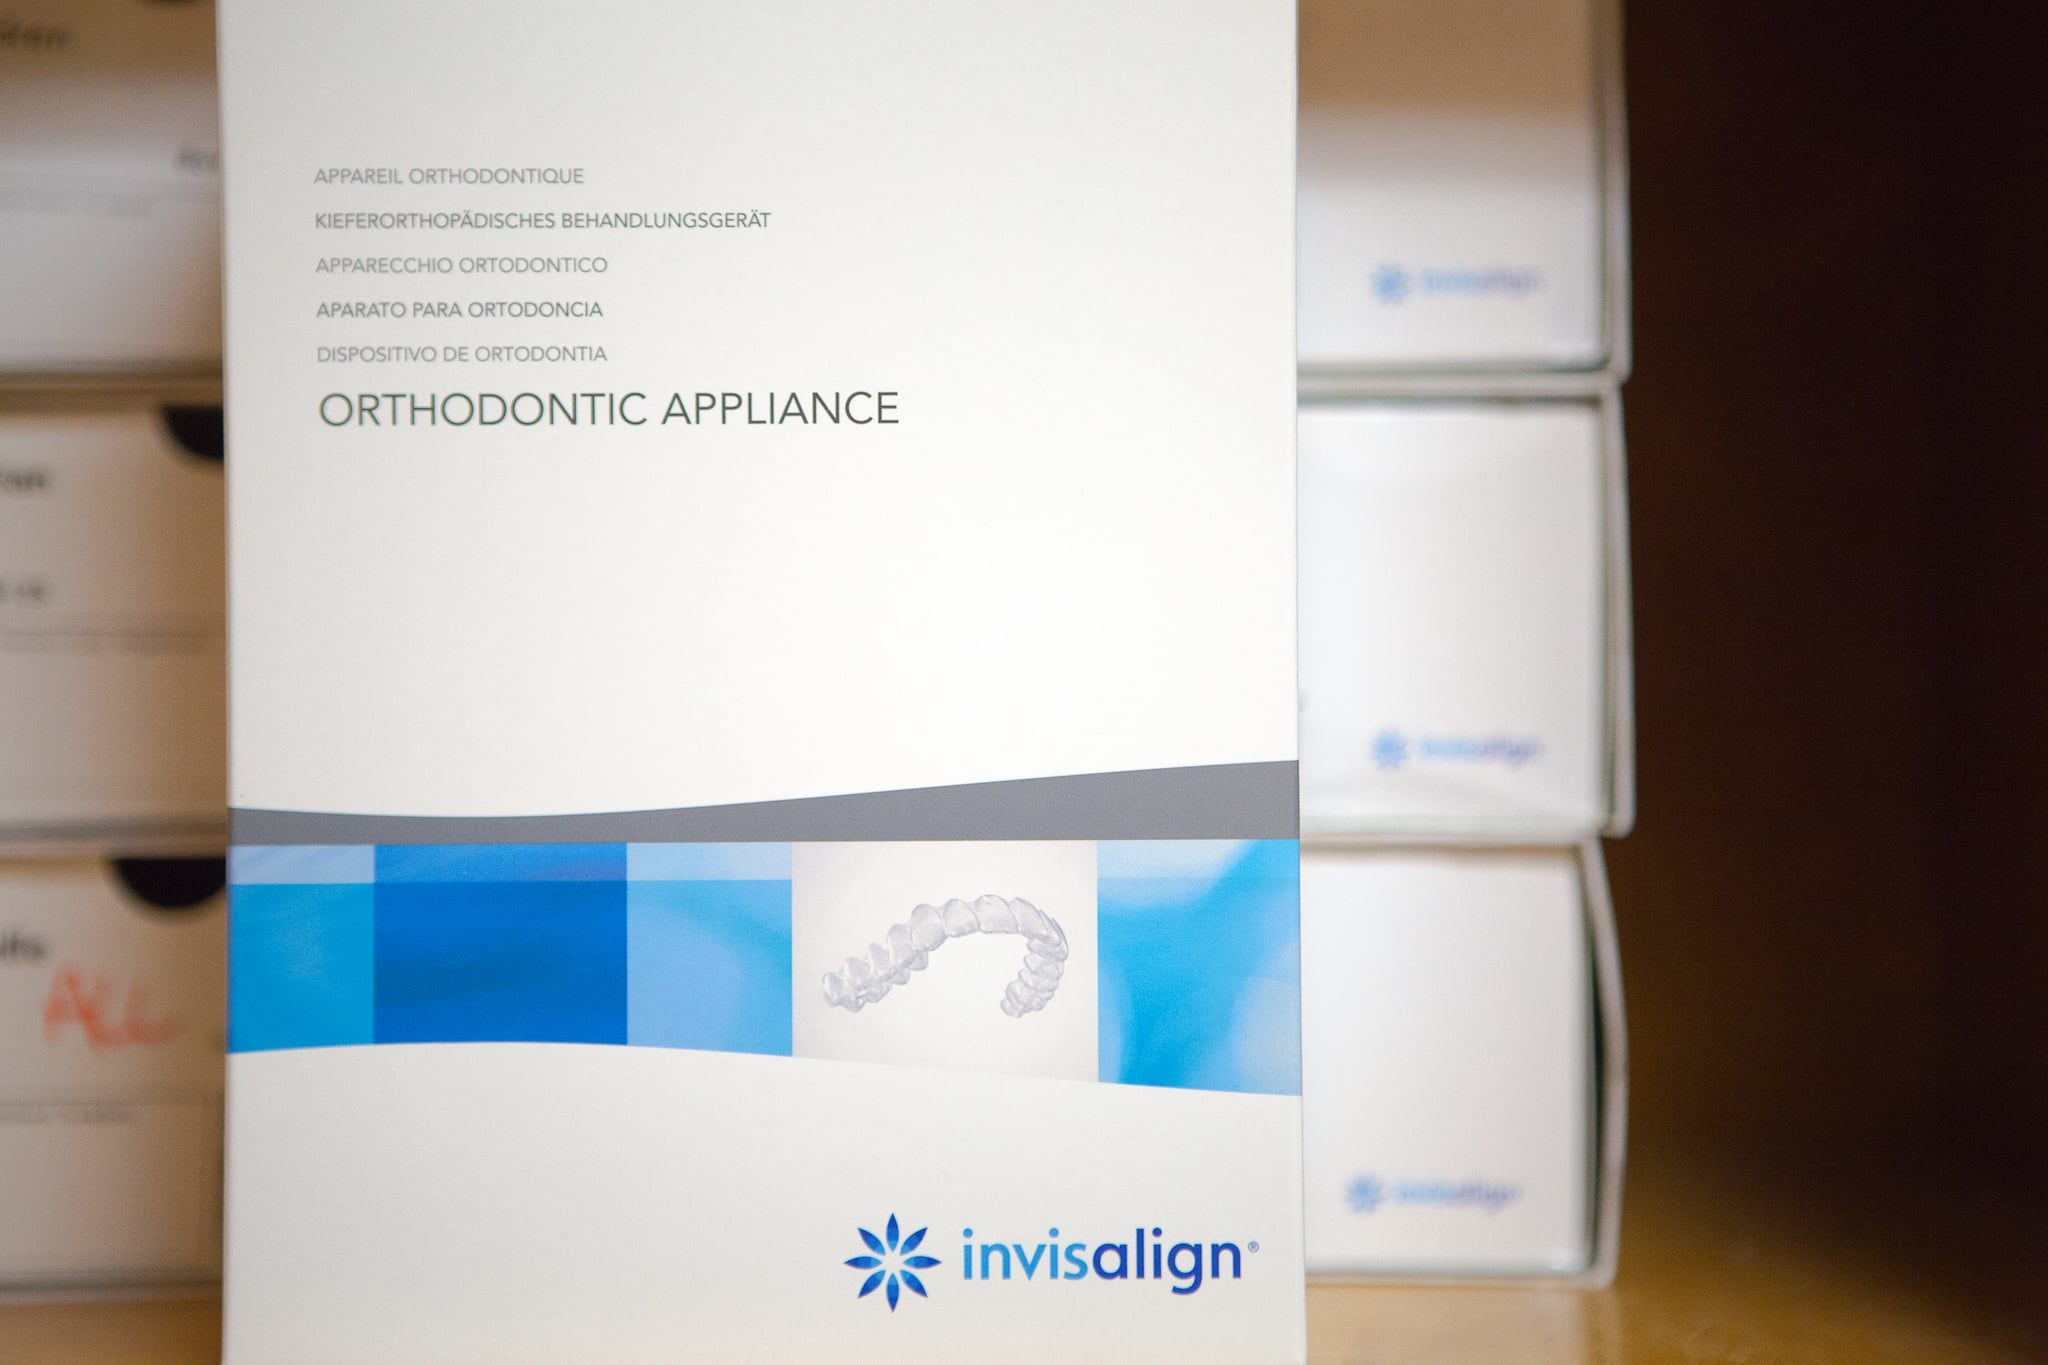 Nudera-Orthodontics-Braces-and-appliances-in-Chicagoland-5of-7  - Braces and Invisalign in South Elgin and Elmwood Park, IL - Nudera Orthodontics